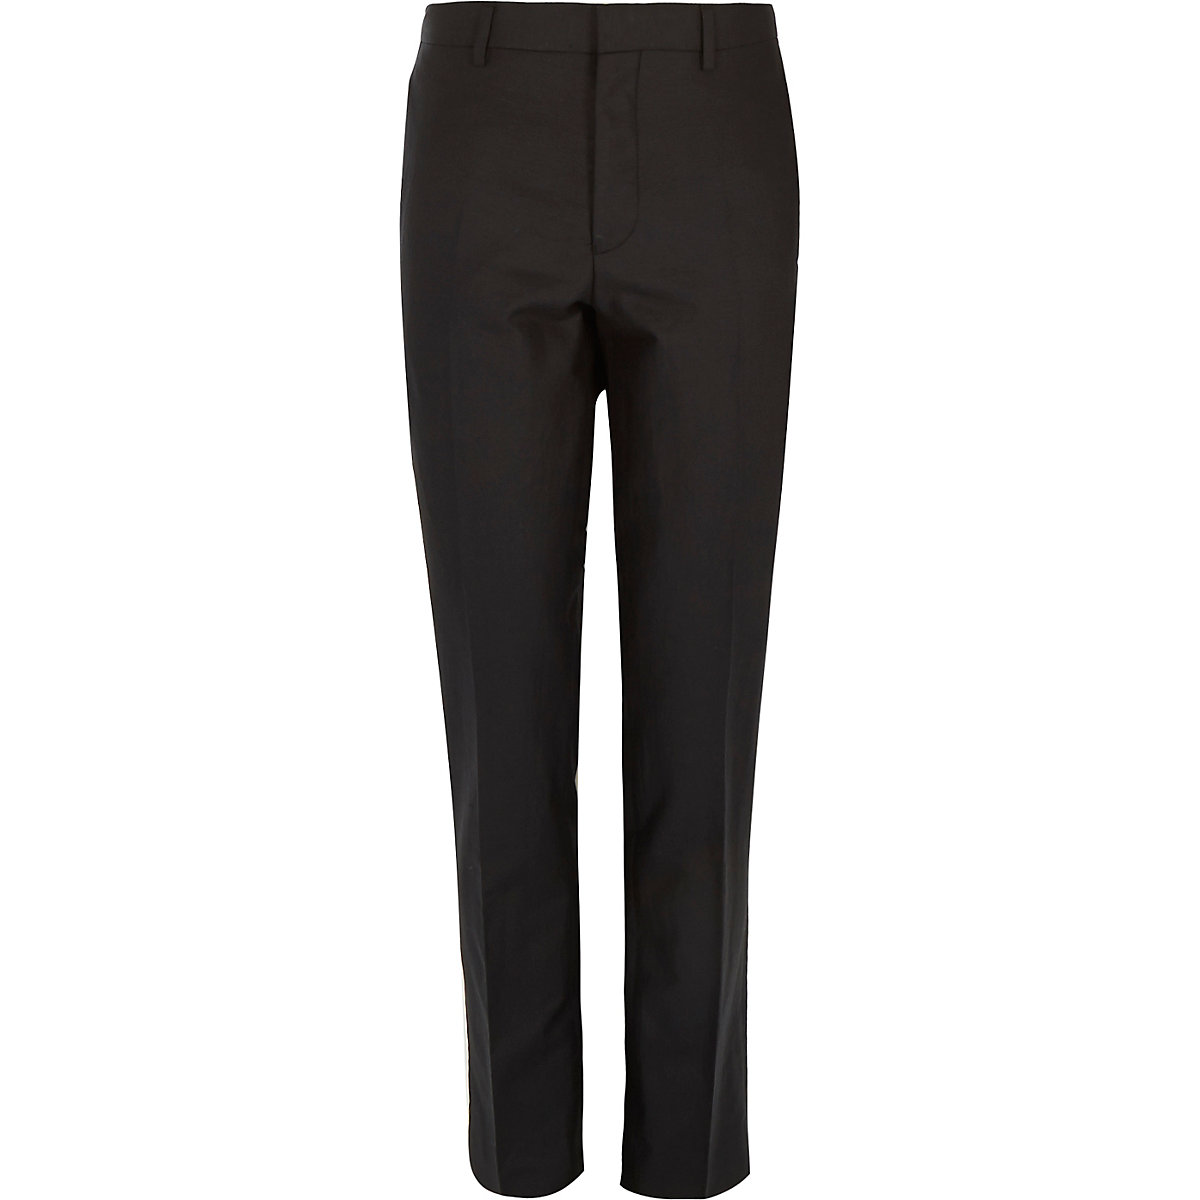 Black linen-blend skinny suit trousers